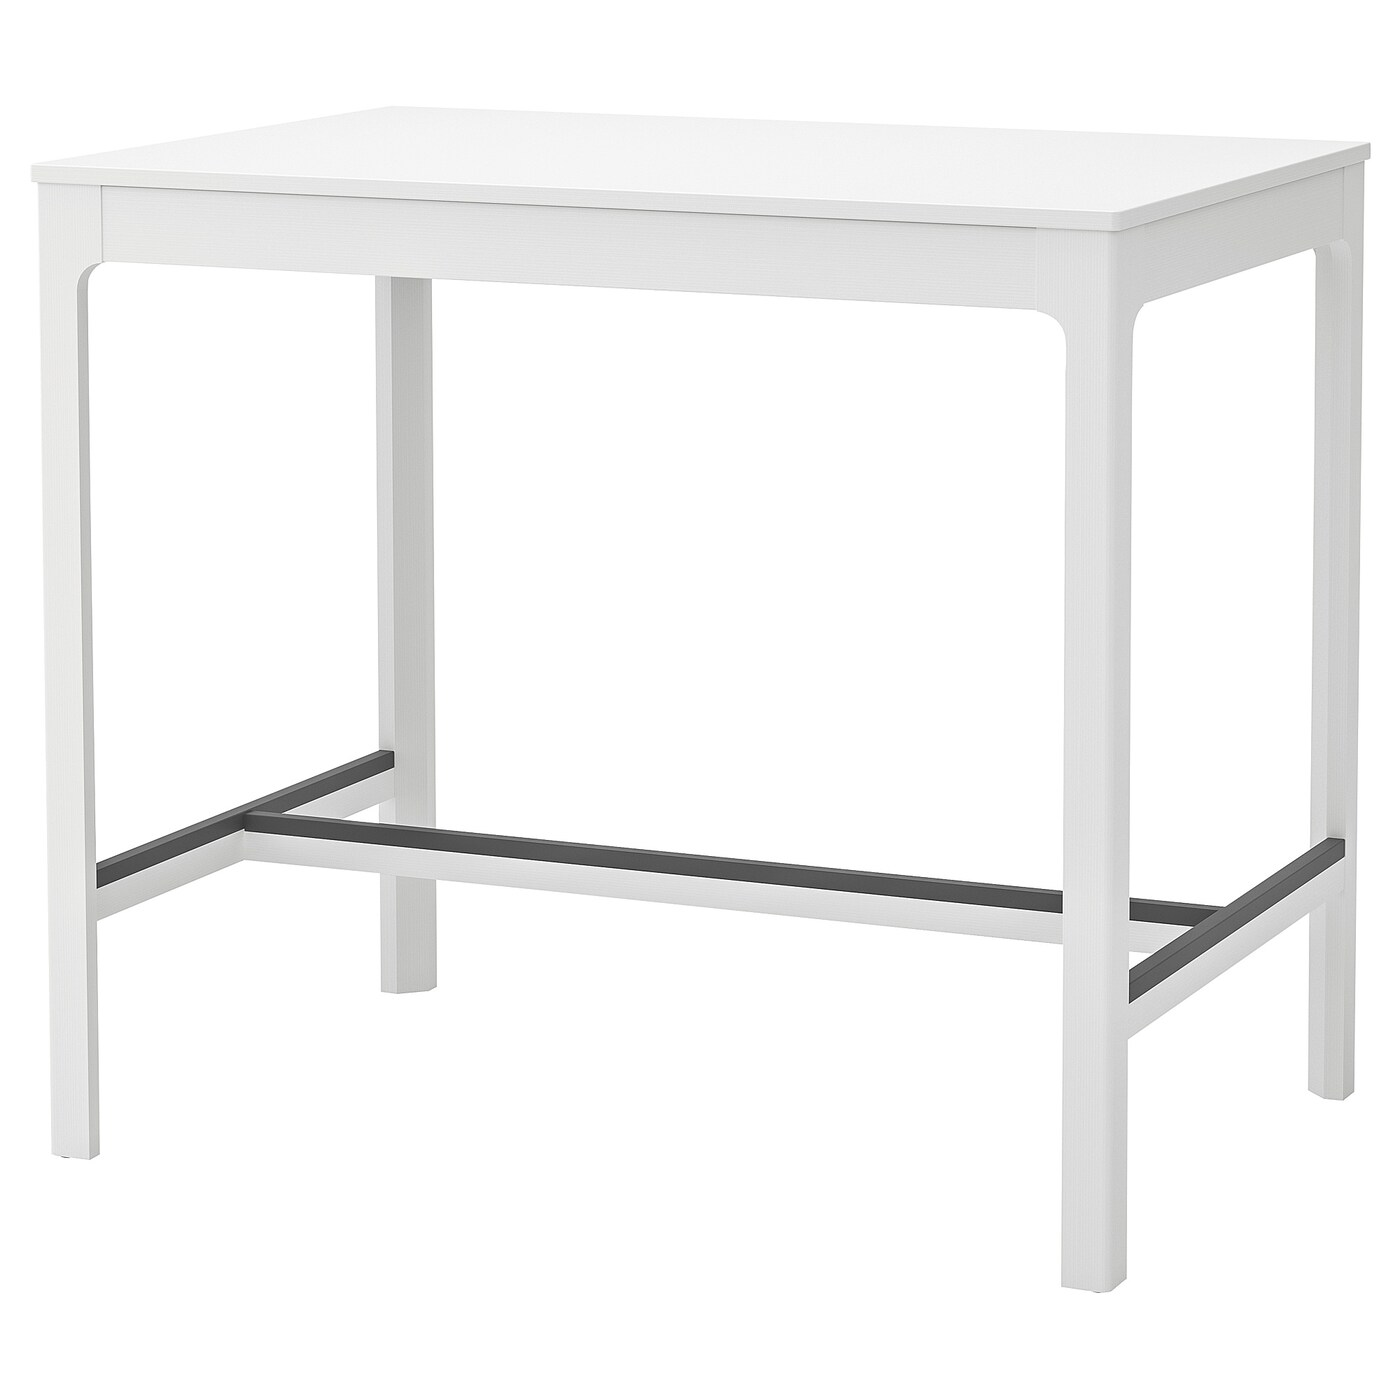 ekedalen bar table white 47 1 4x31 1 2x41 3 8